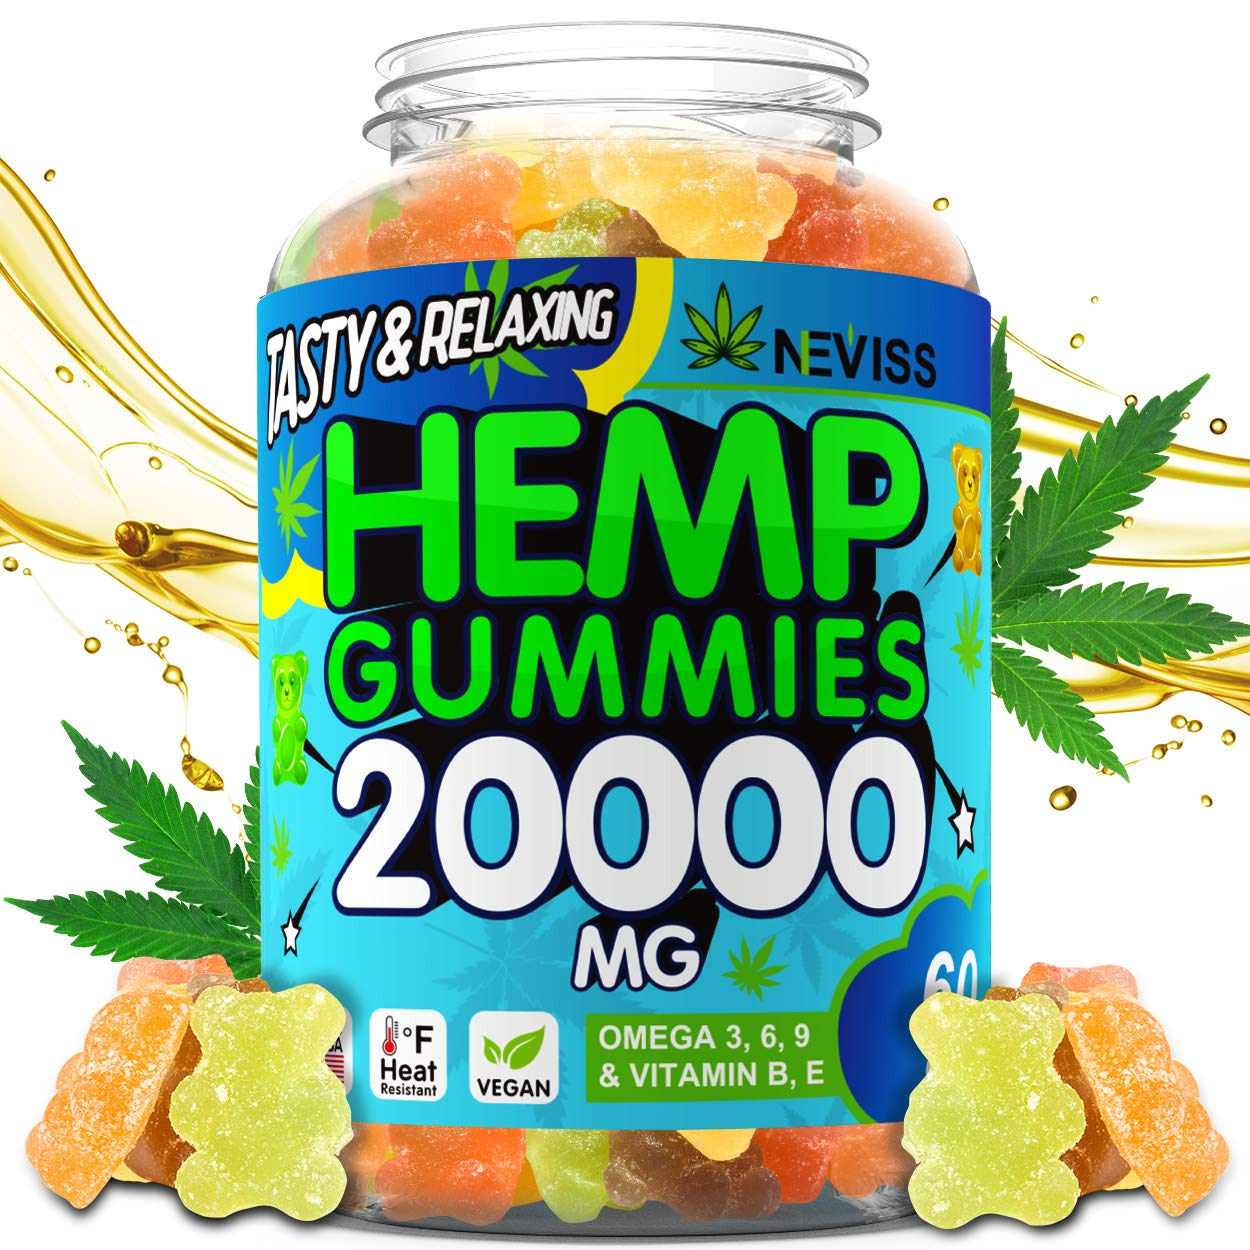 Vegan Hémp Oil Gummies for Pain, Anxiety, Stress & Inflammation Relief, Sleep, Calm, Mood & Immunity Support, Hémp Extract Gummies 20000 MG - Natural Organic Pure Hémp Gummies Bears Made in USA by Nevissbags